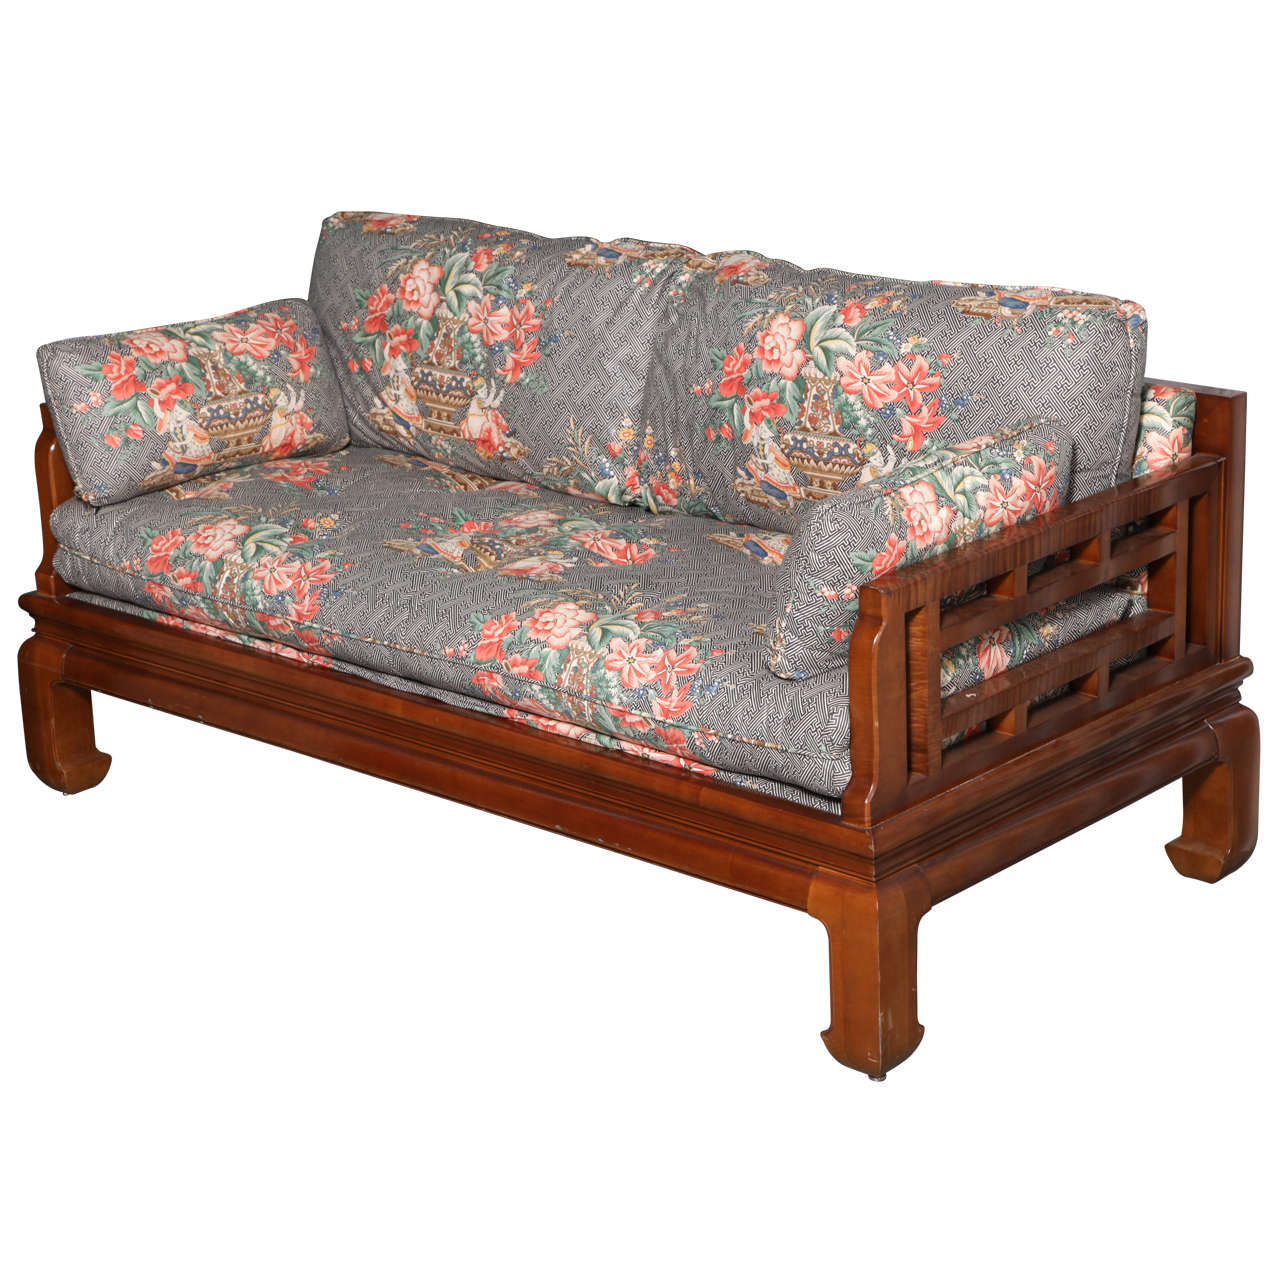 Michael taylor baker furniture asian style sofa at 1stdibs for Furniture sofas and couches